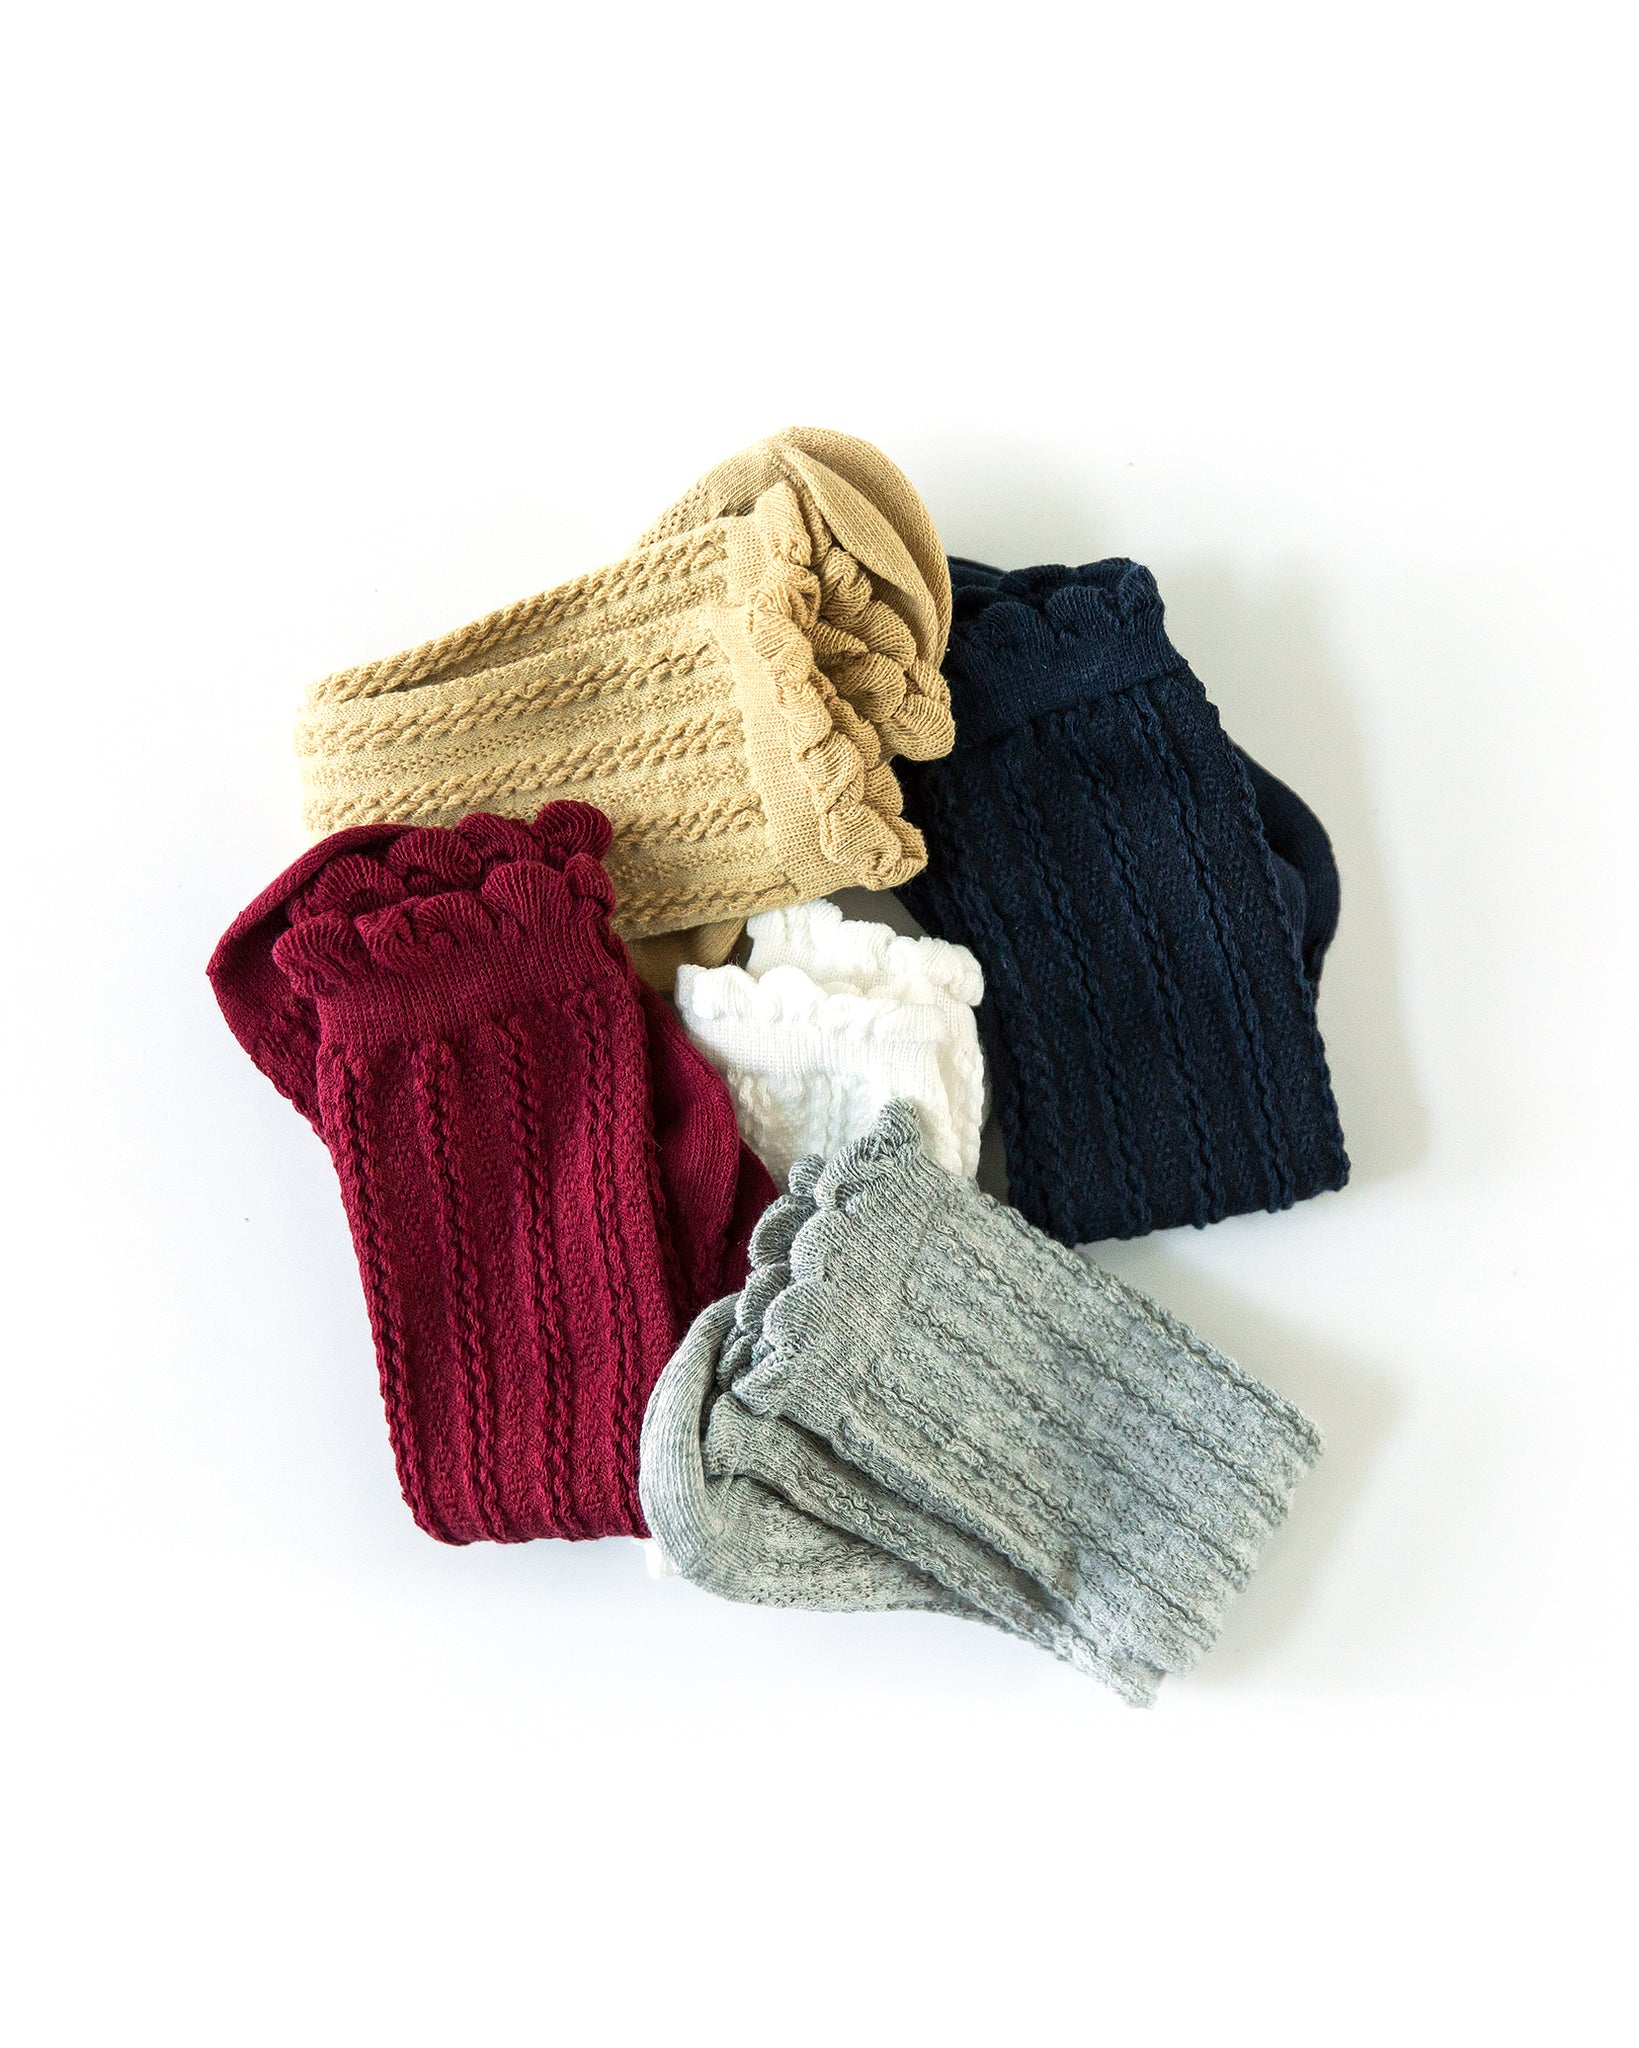 Knee Cable Knit Socks in Gray